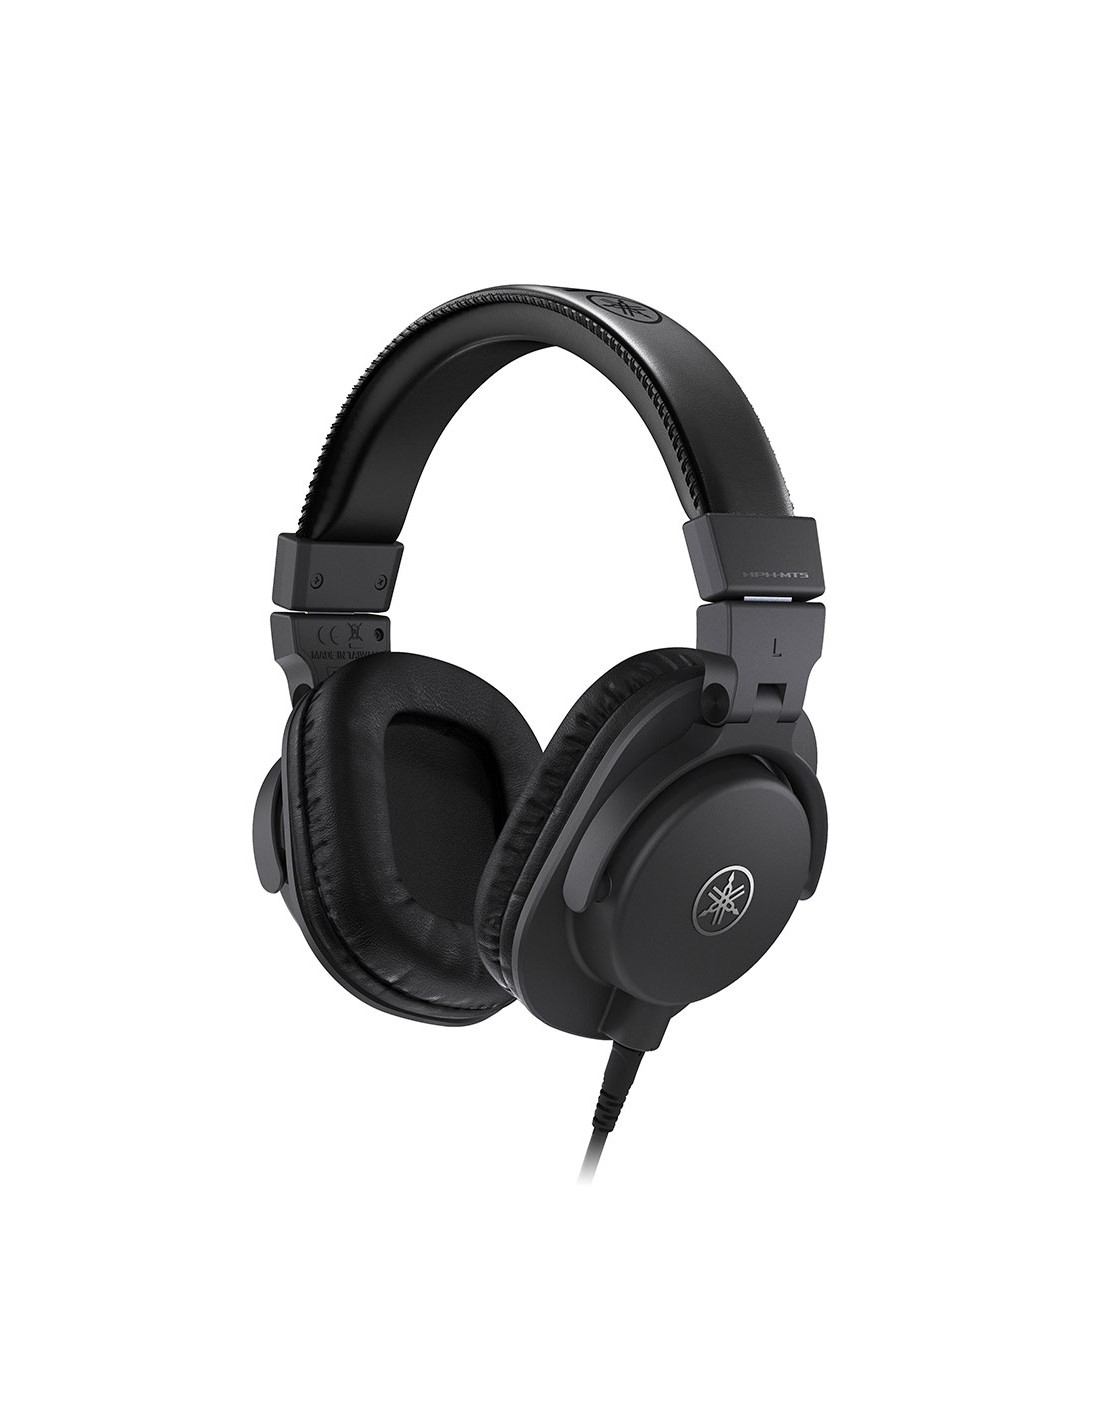 yamaha hph mt5 professional studio headphones black. Black Bedroom Furniture Sets. Home Design Ideas